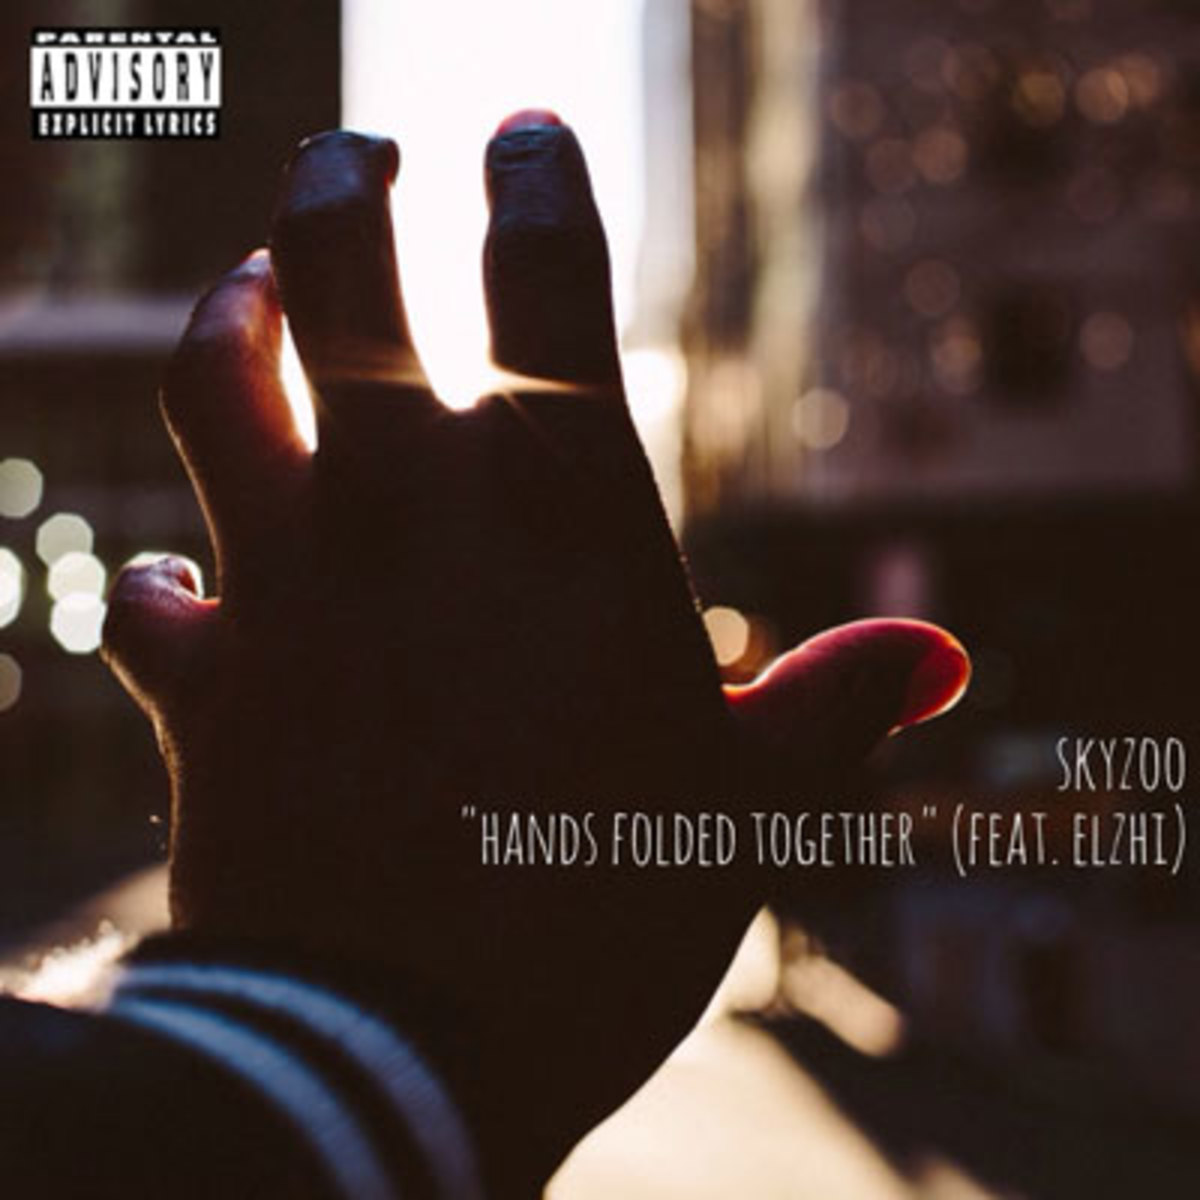 skyzoo-hands-folded-together.jpg